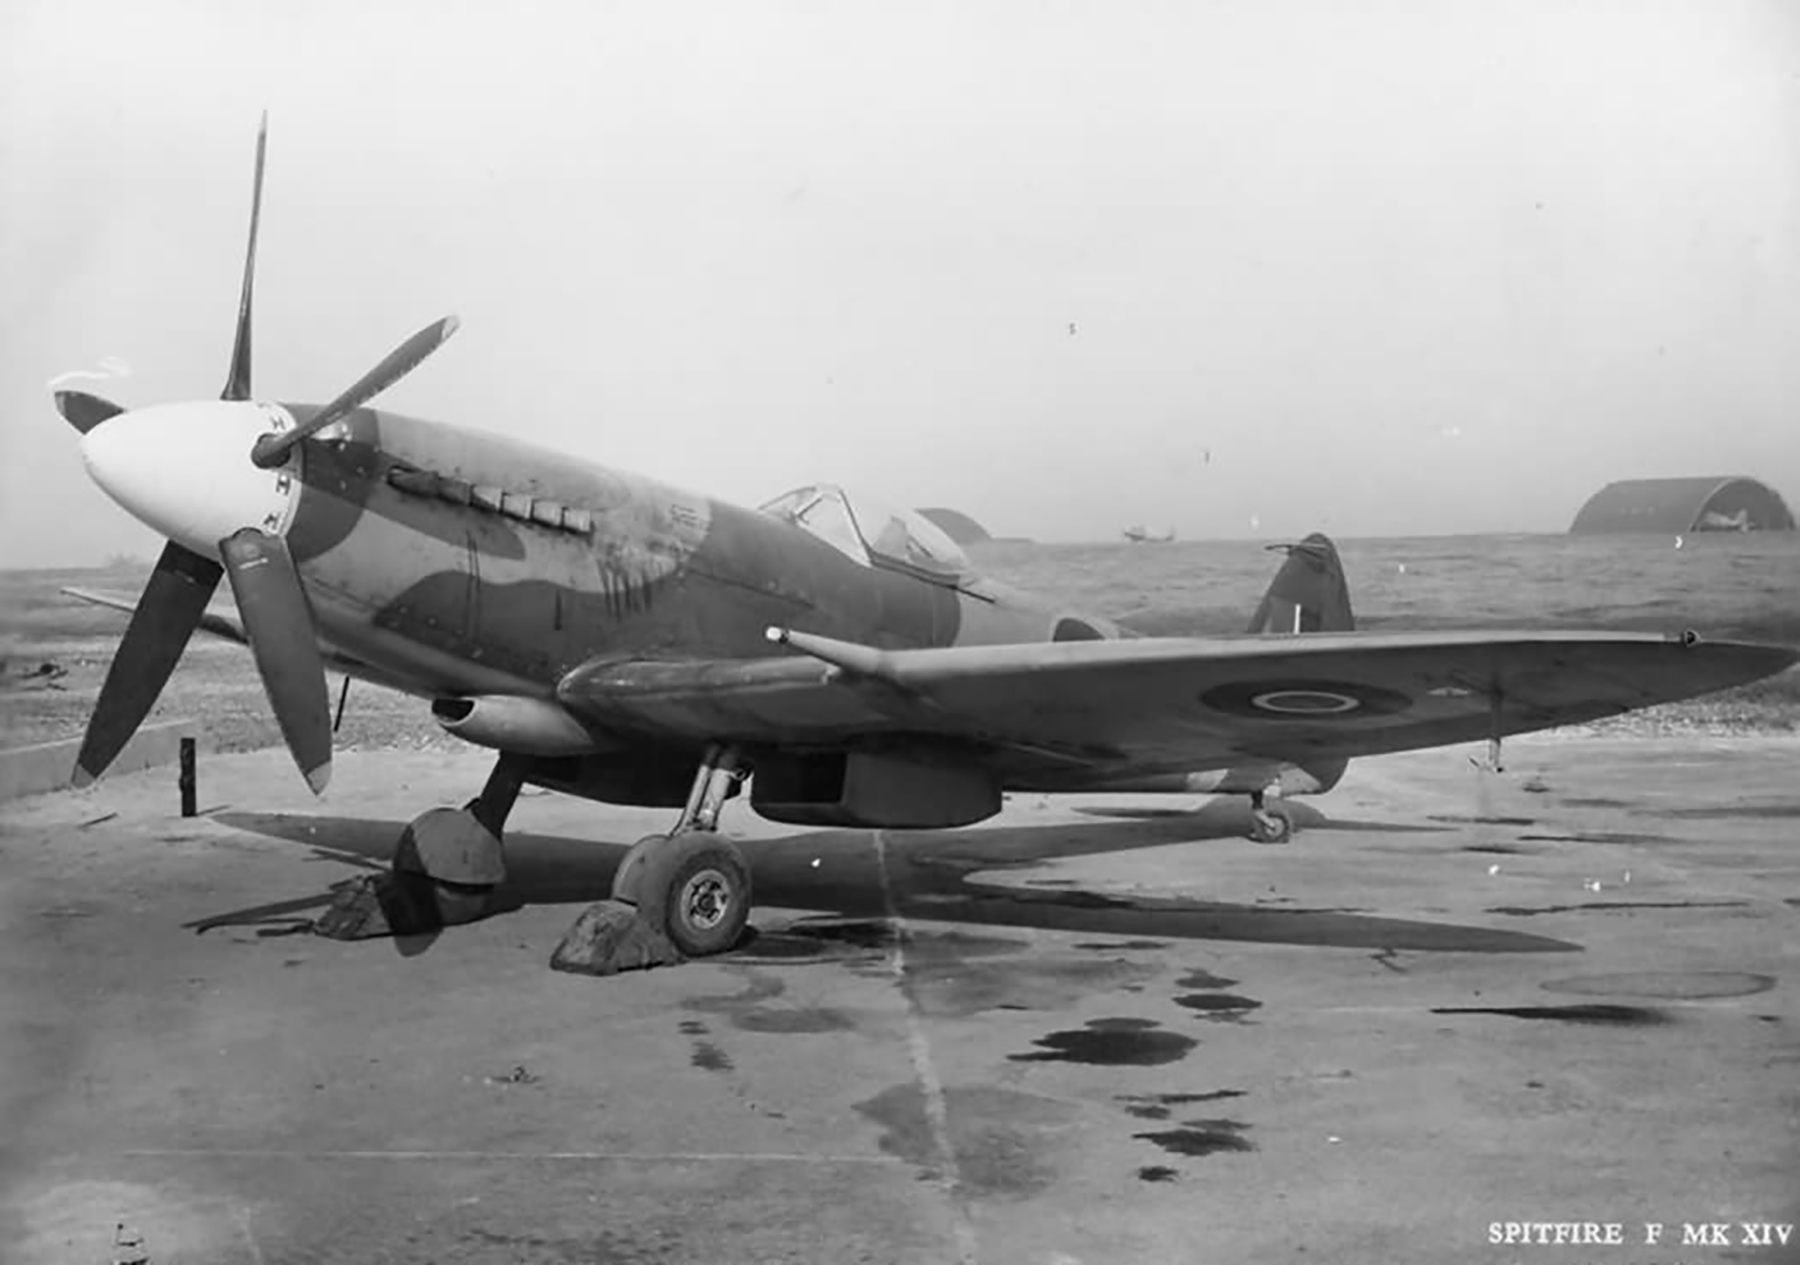 Spitfire FXIVe RAF RM784 March 1945 web 01